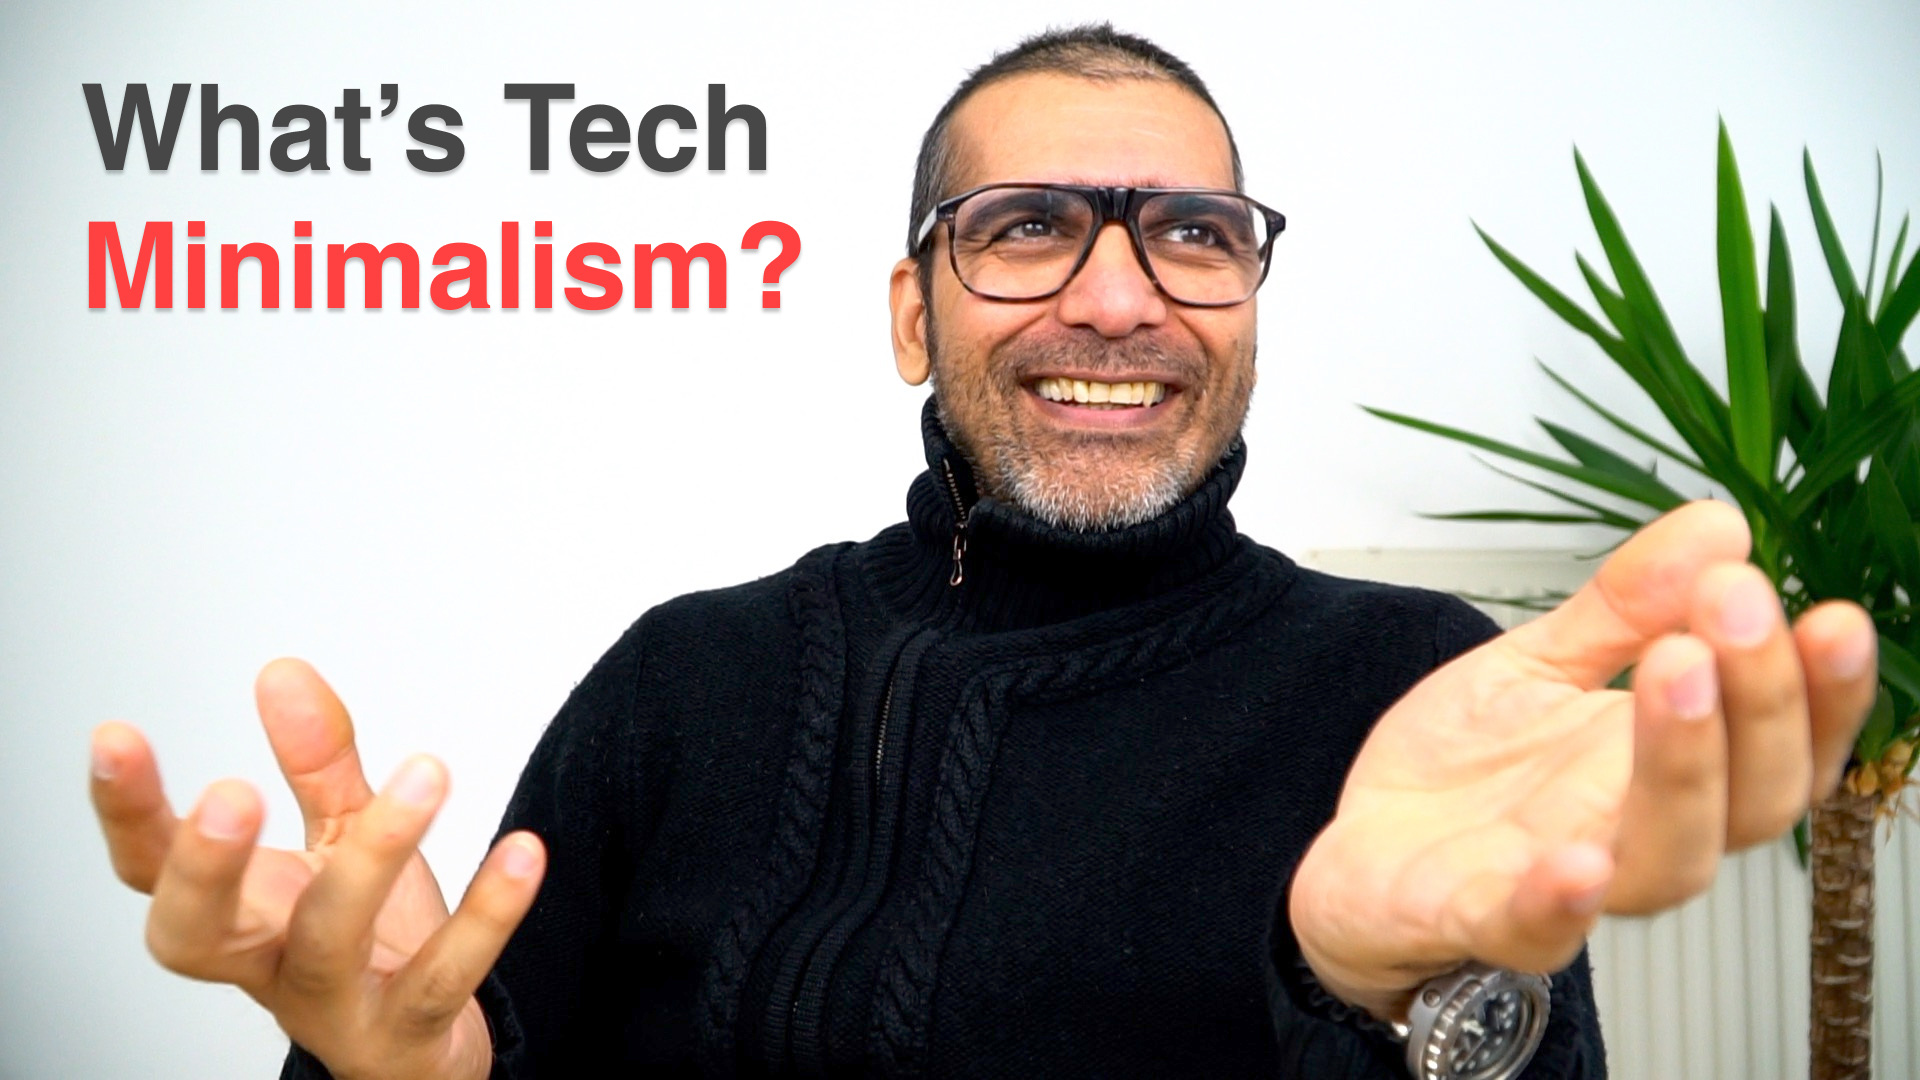 So, What's Tech Minimalism?